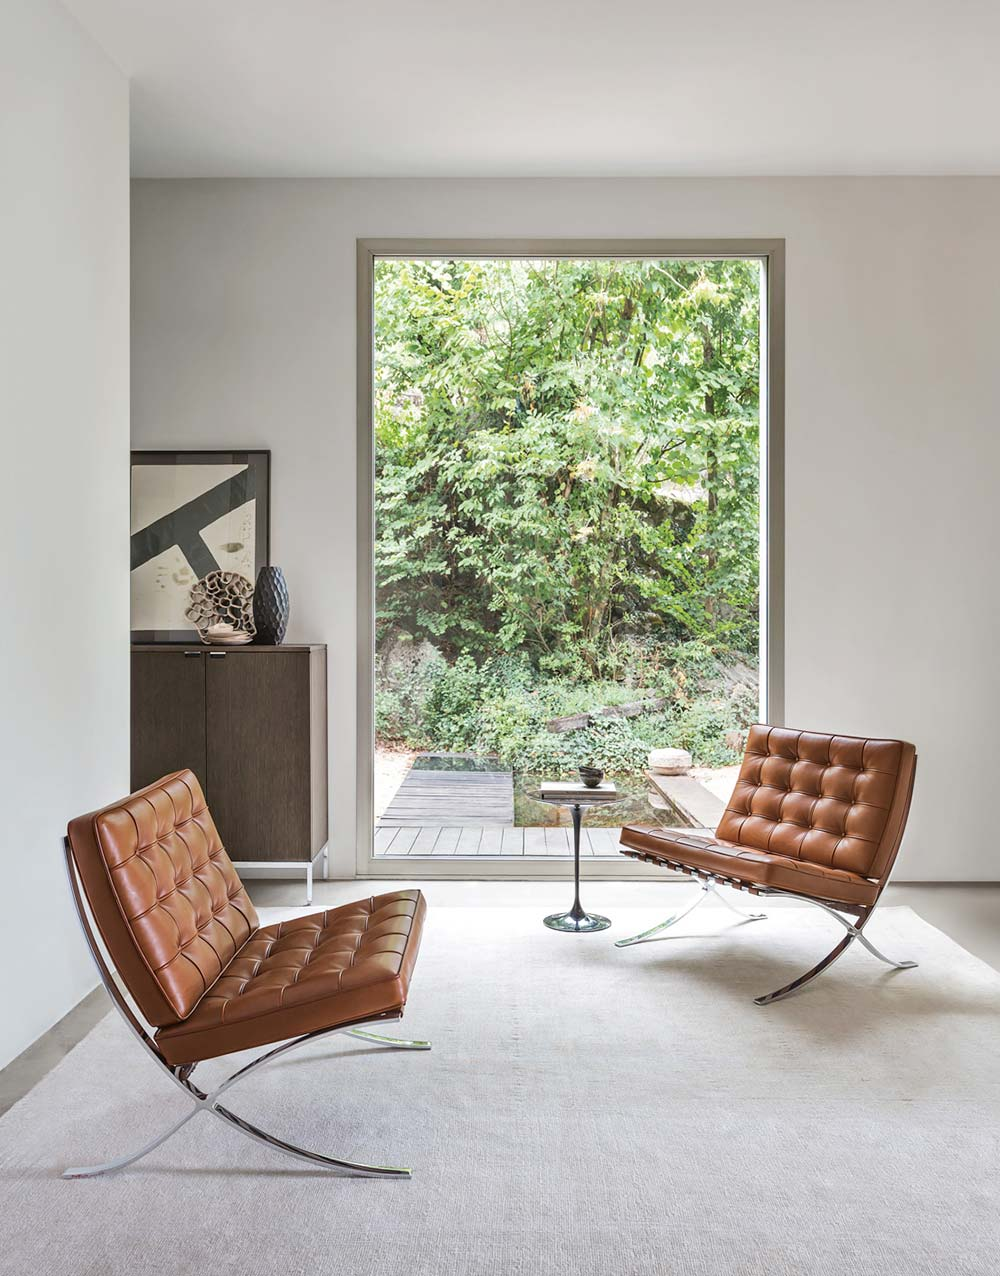 Knoll Living Room Furniture with Barcelona Chair